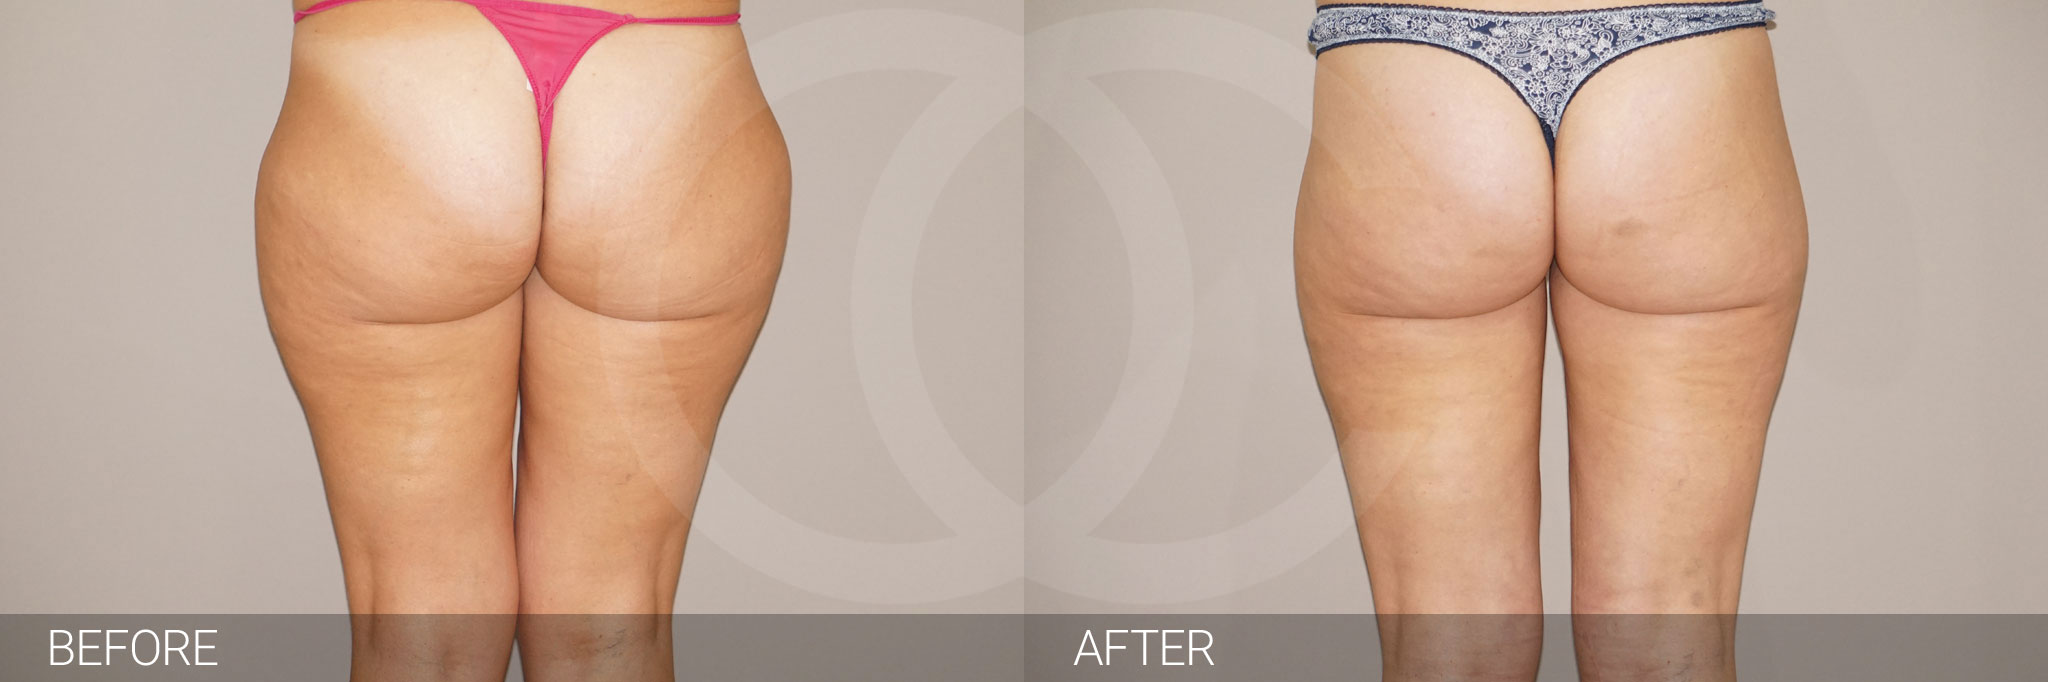 Liposuction Waterjet-assisted Liposuction ante/post-op I